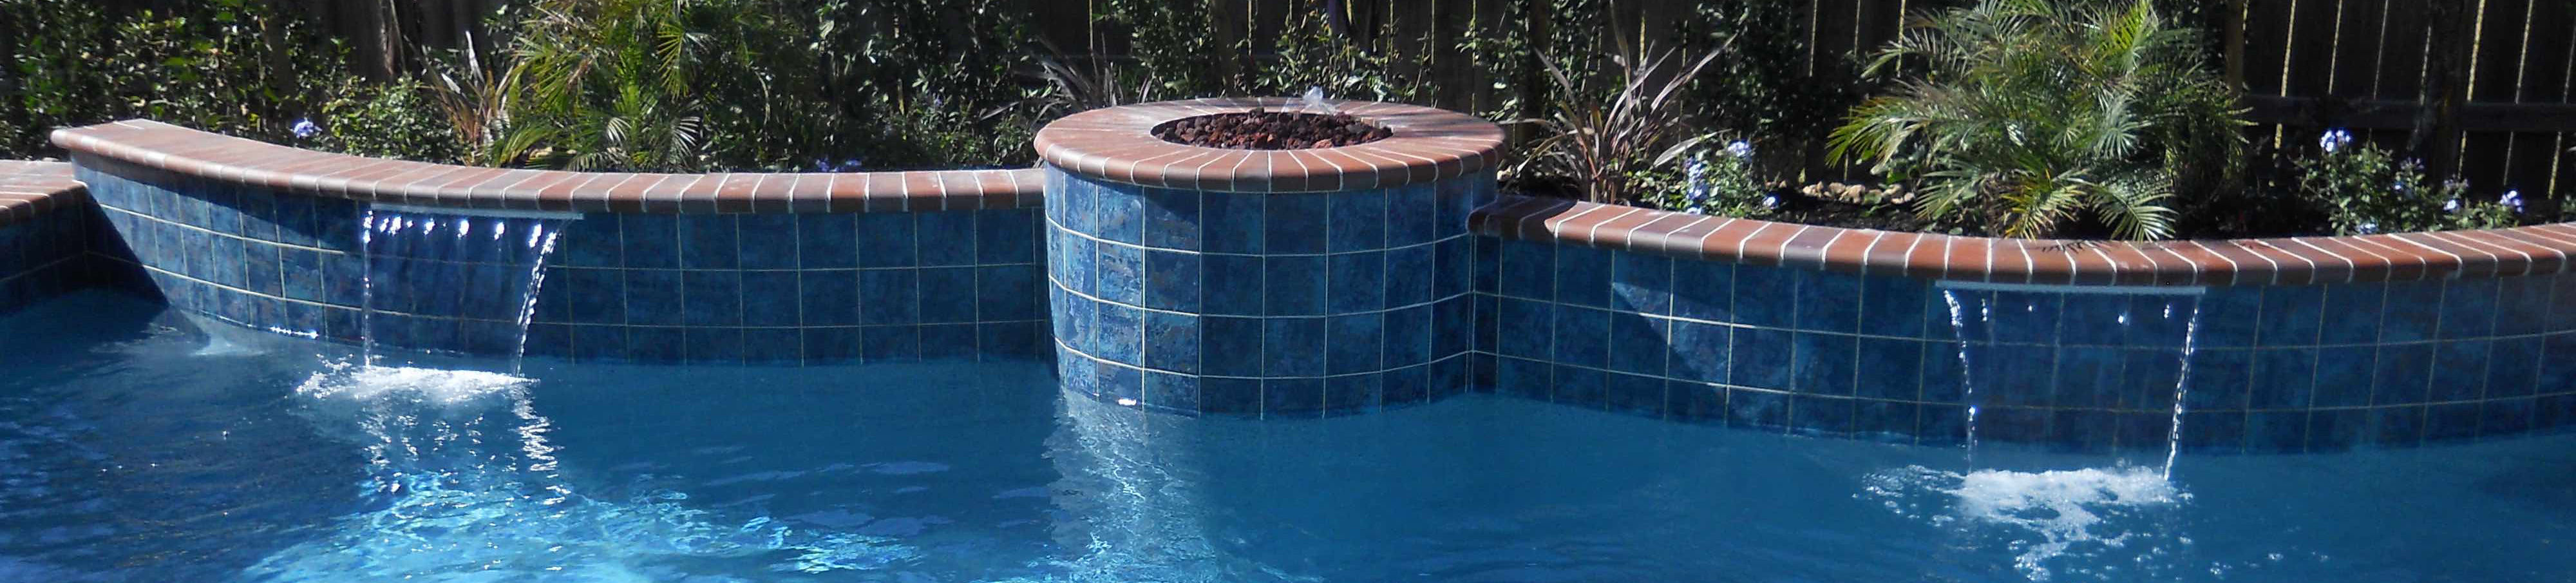 U201cThis Past Summer We Contracted With Perry Pools And Spas To Install A  Swimming Pool At Our Newly Purchased Residence. By Way Of Background, ...